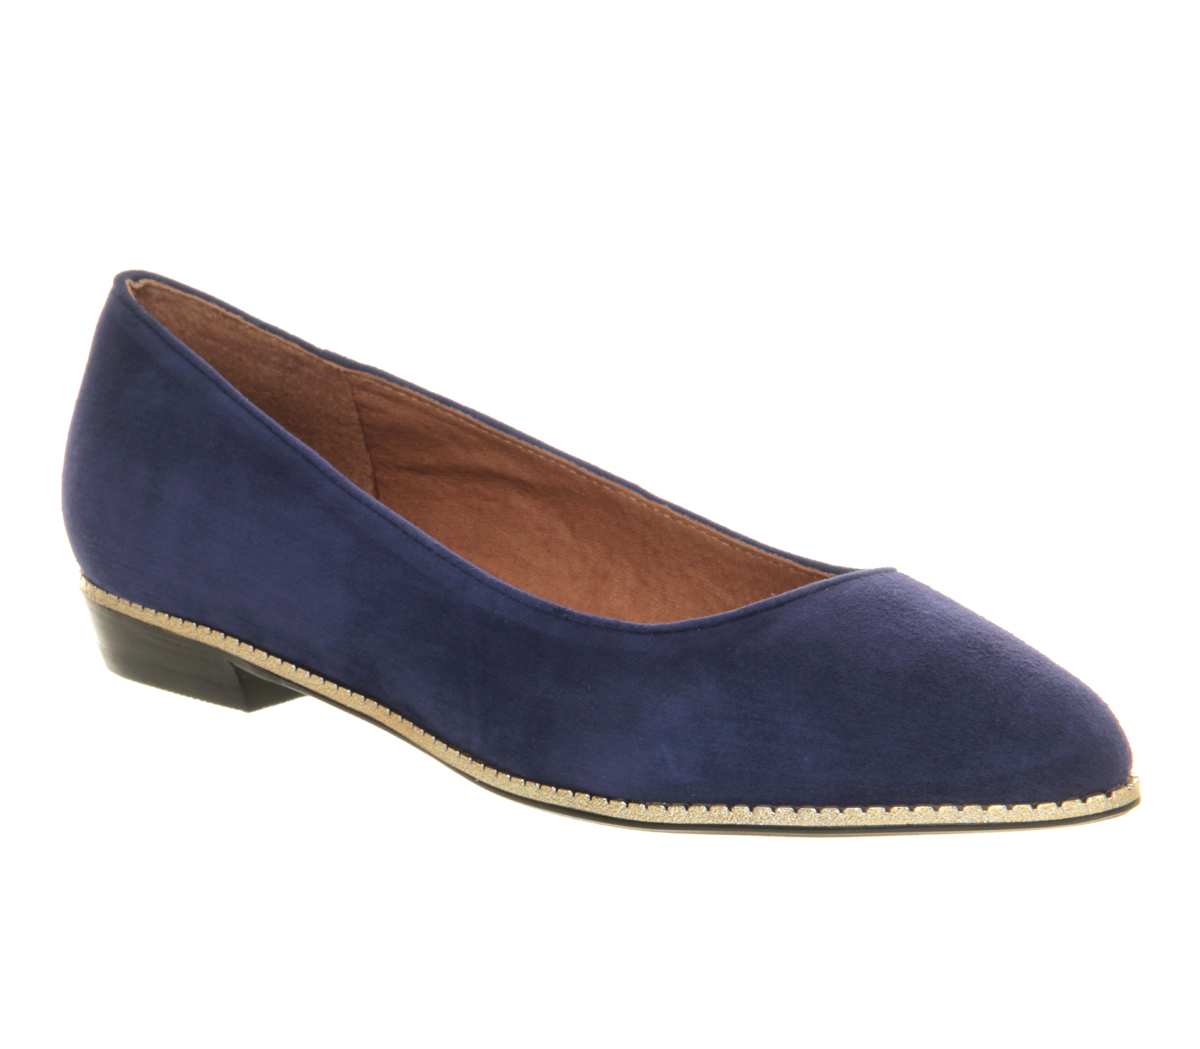 Shop for women's flats with ASOS. Discover our selection of ballet flats, oxfords, brogues, loafers, and flat boots in a range of styles and colors.